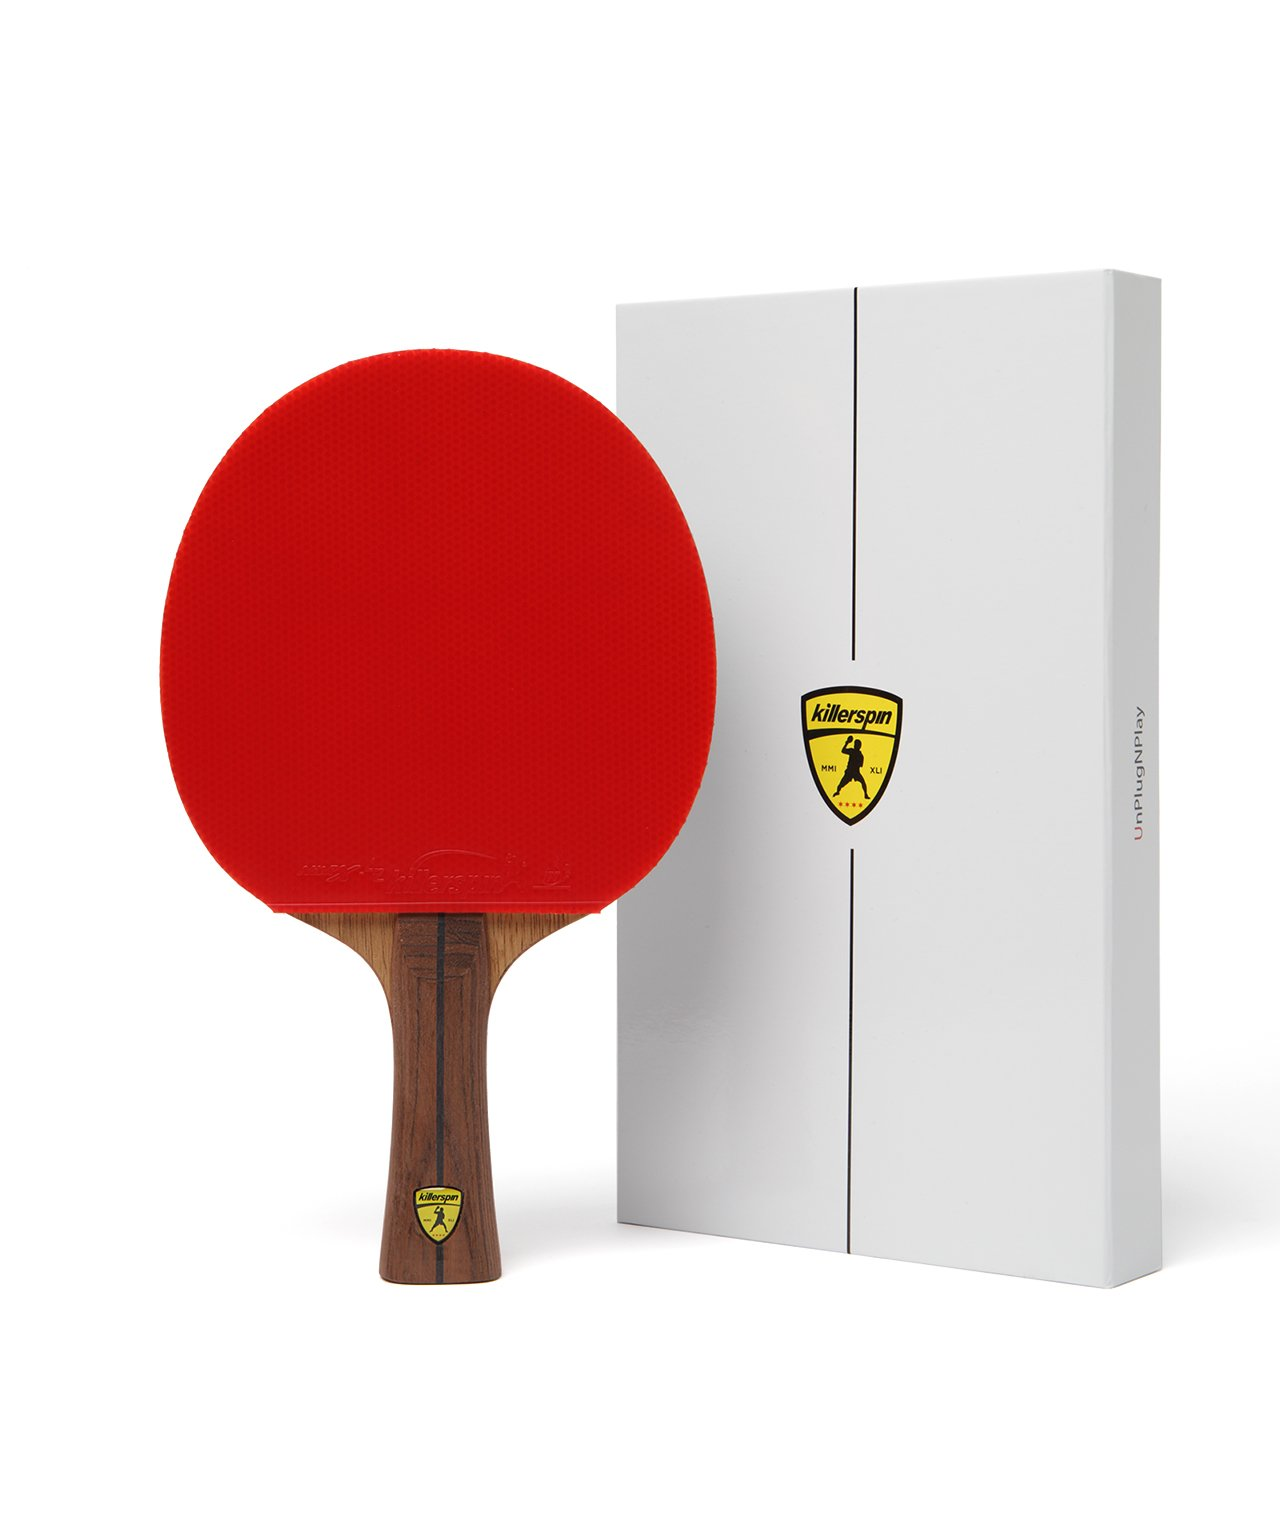 killerspin-ping-pong-paddle-jet800-speed-oakwood-01